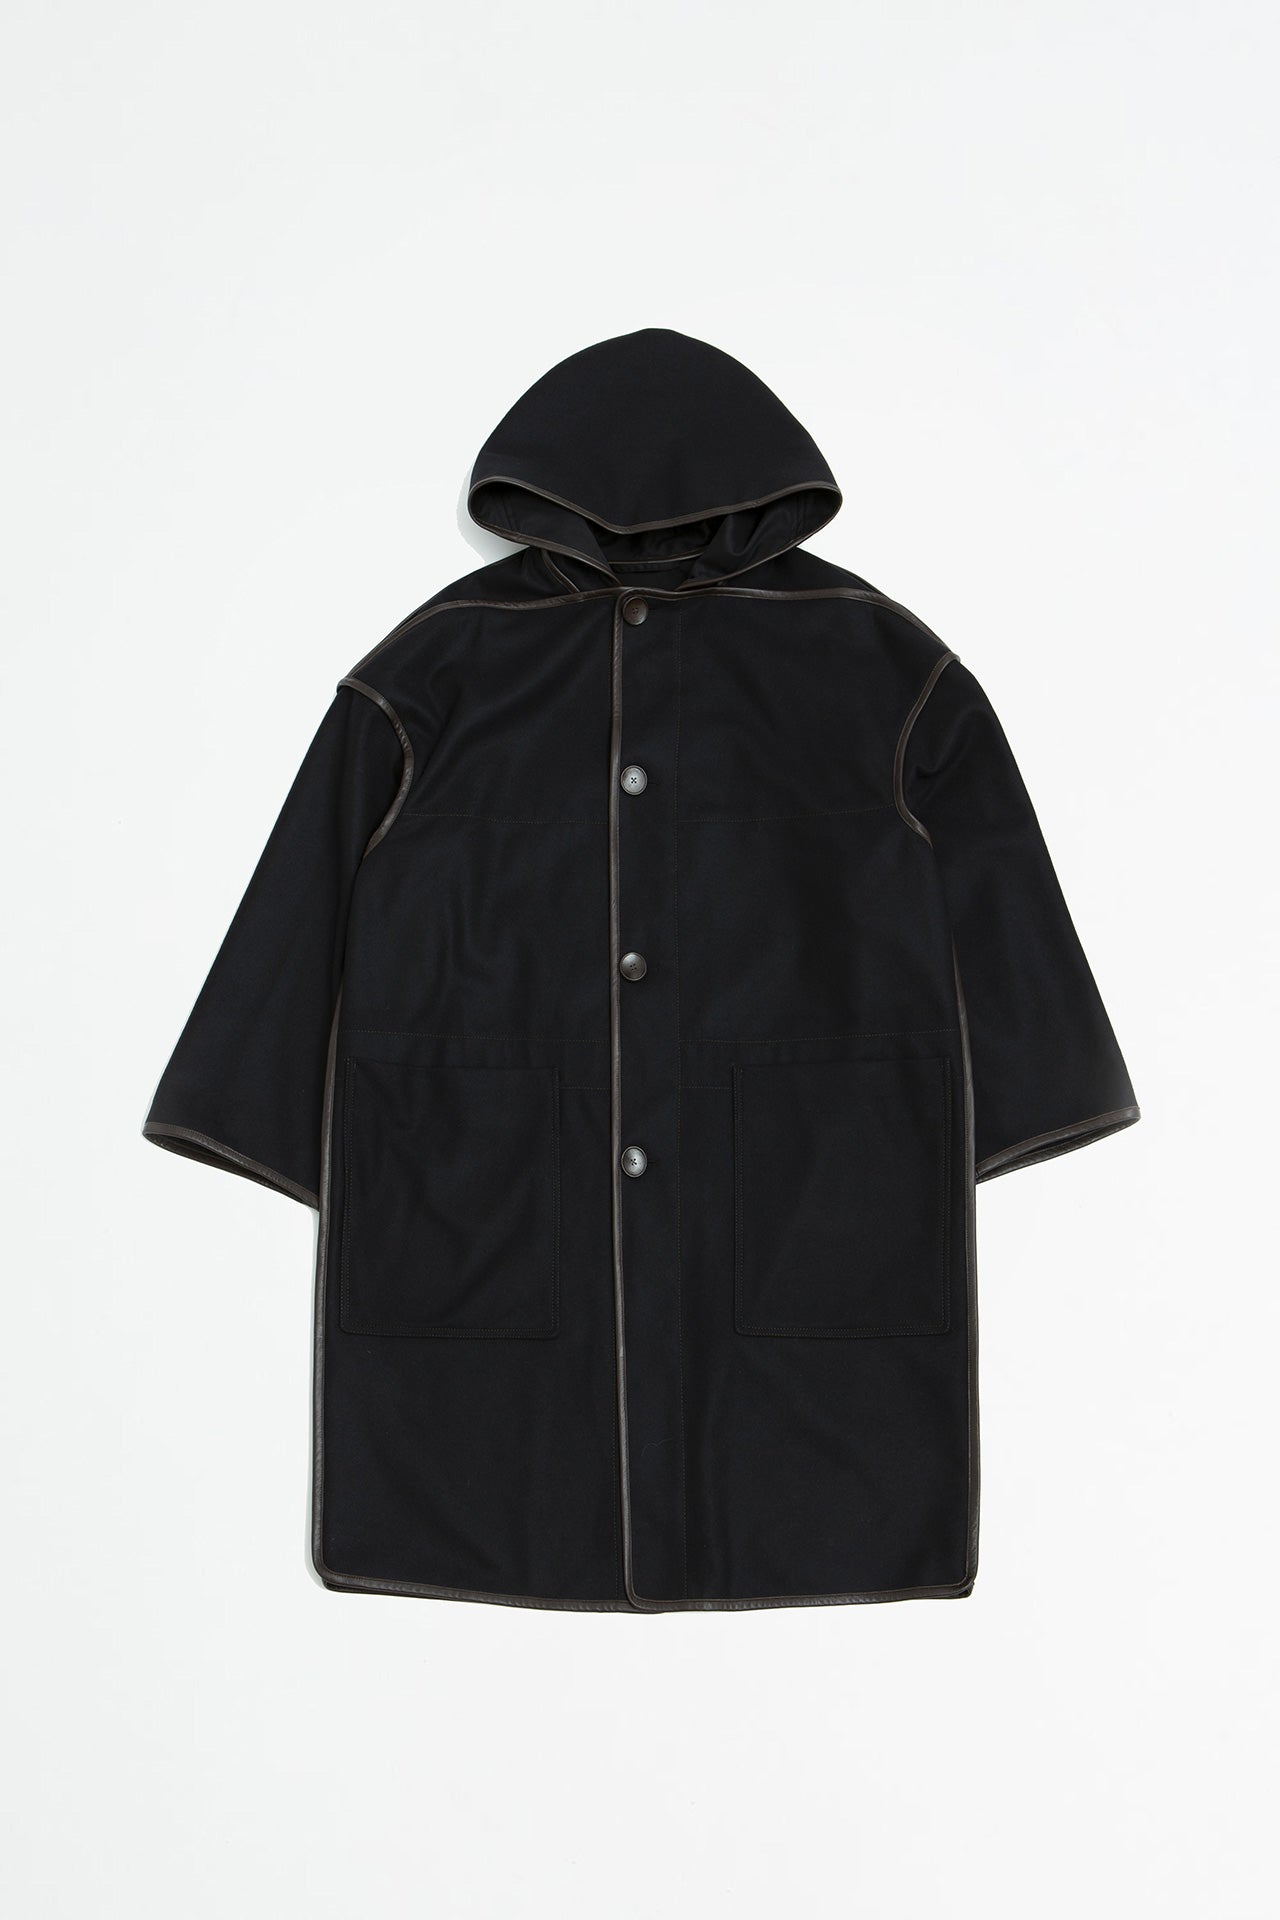 Duffle coat black